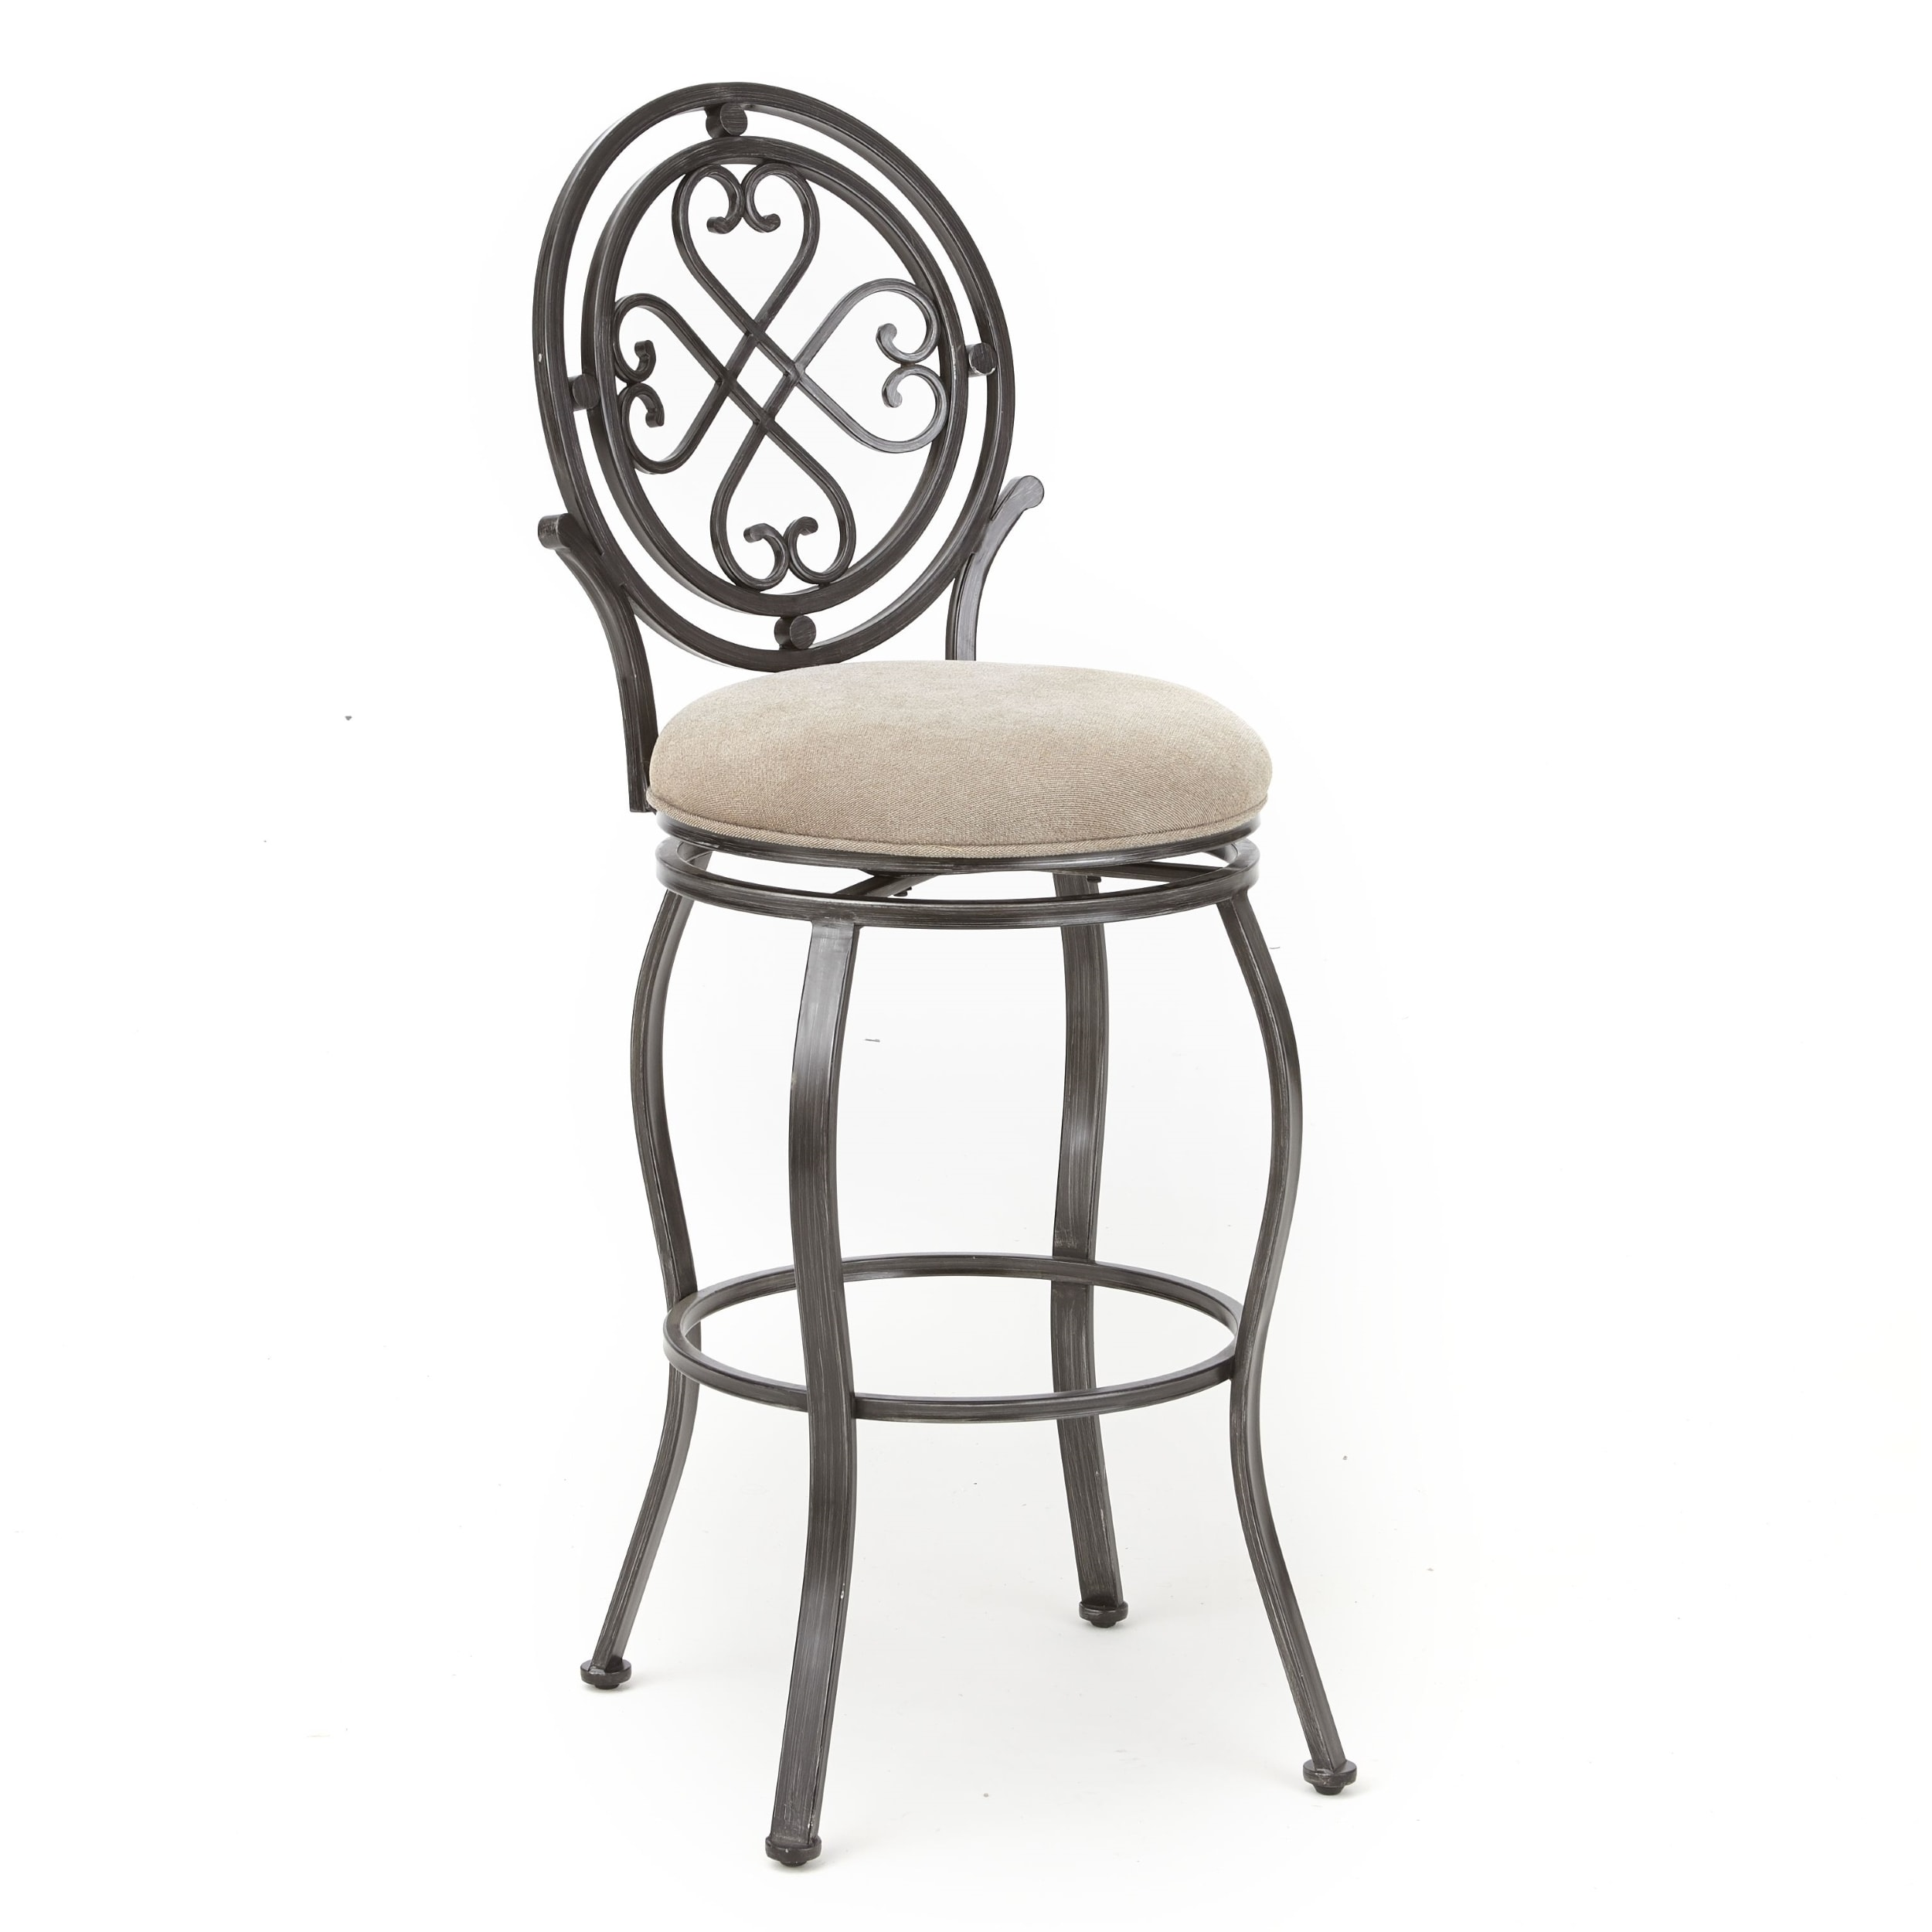 Mendon 24 Inch Swivel Counter Stool By Greyson Living 635178630140